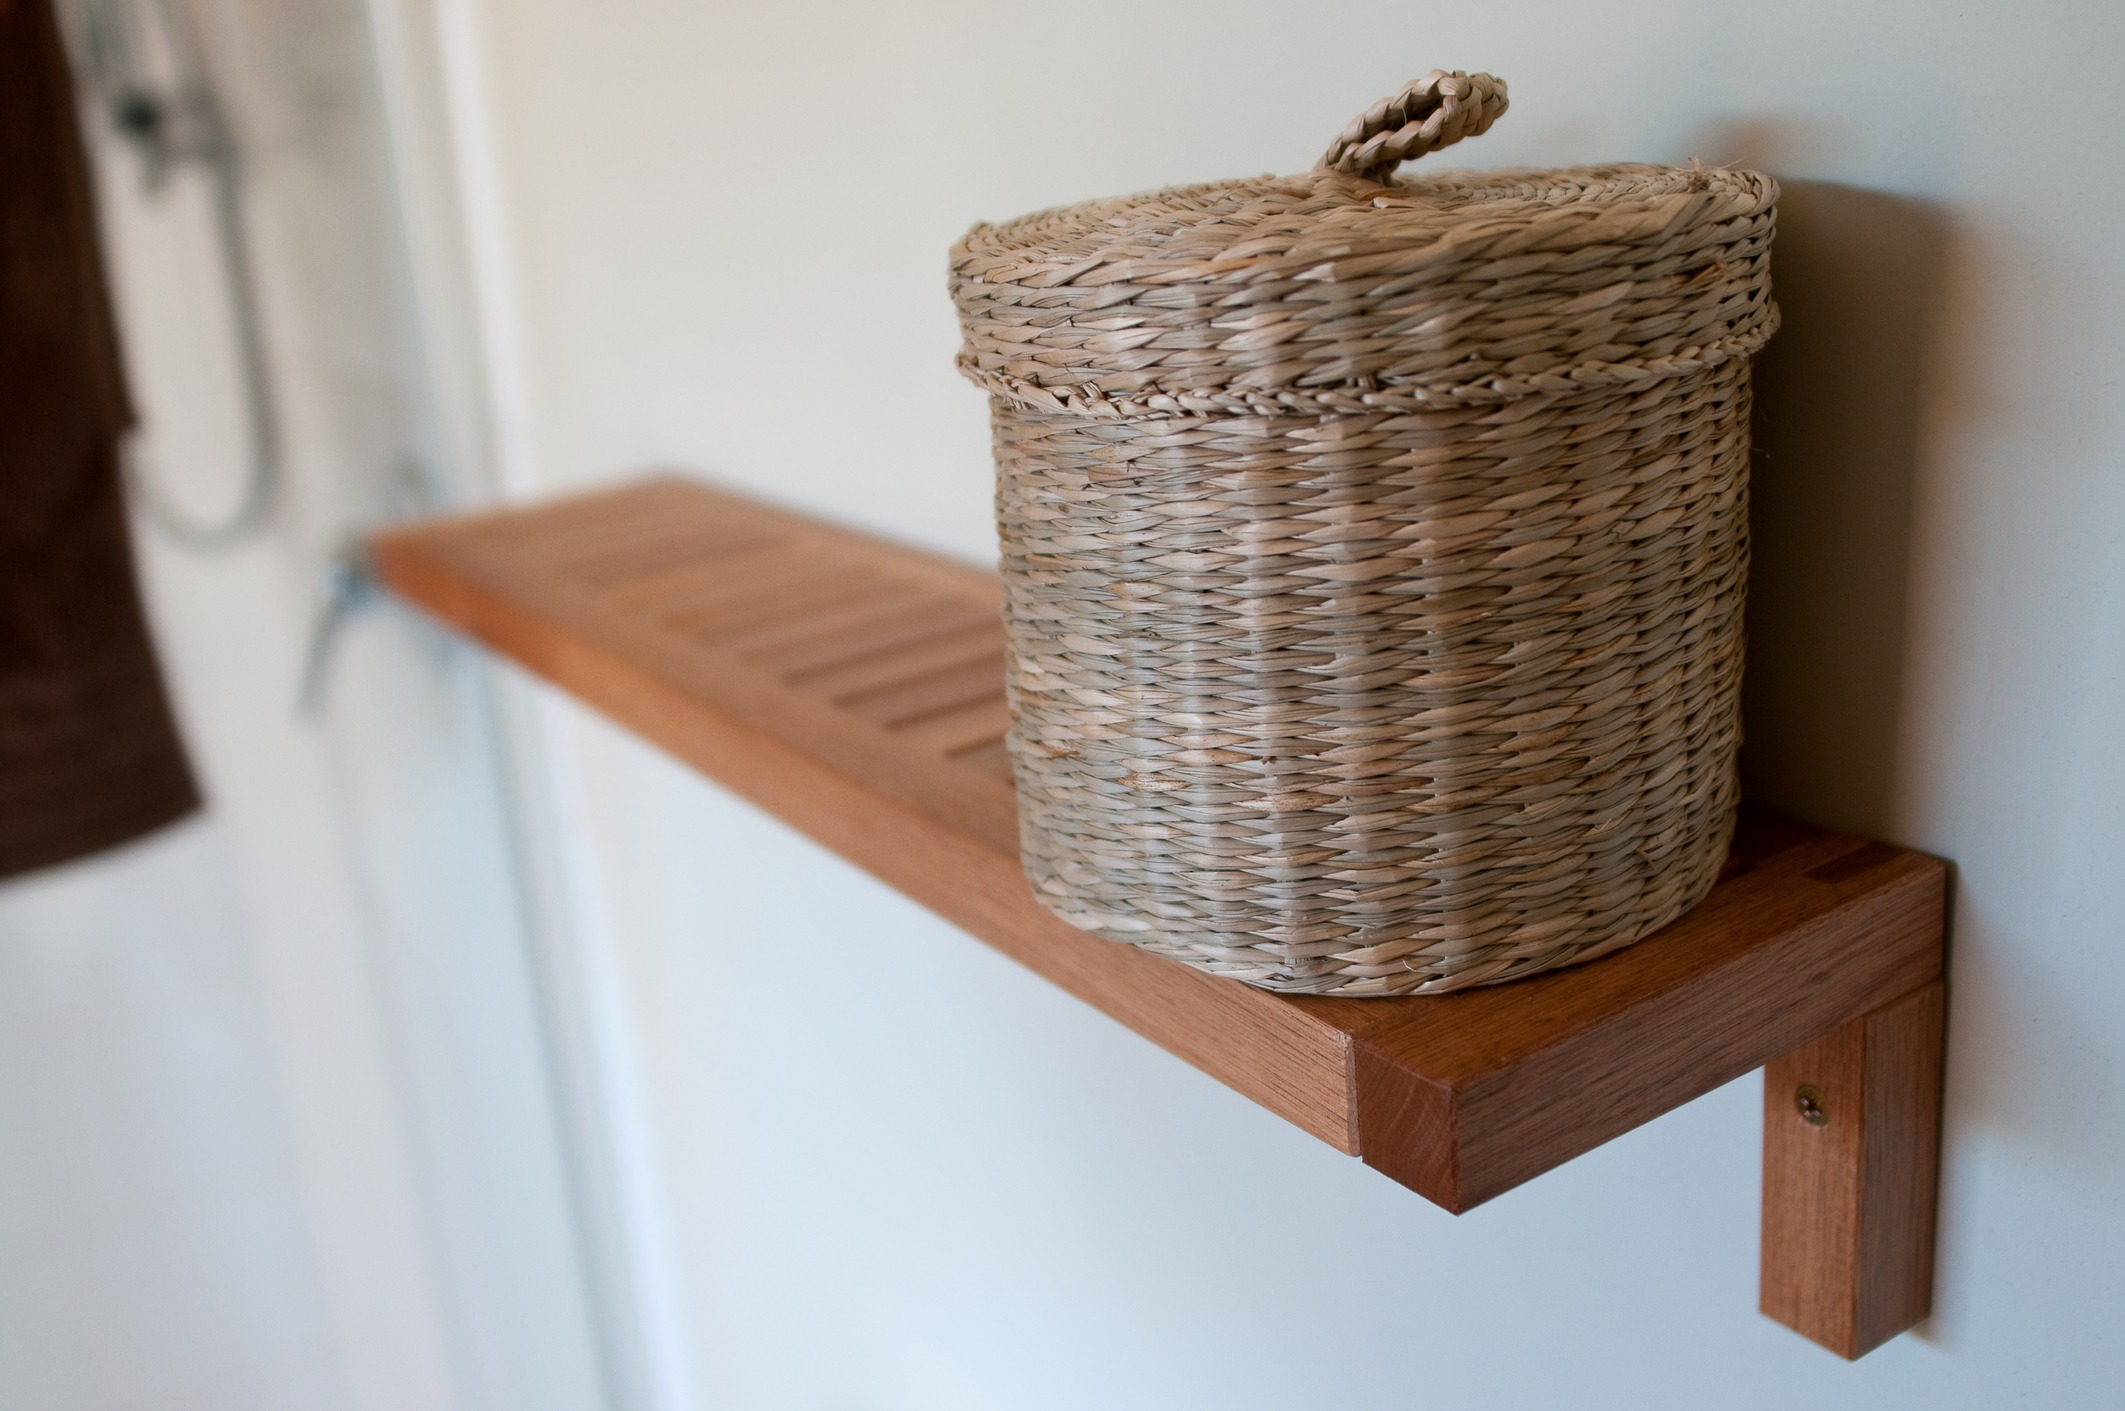 Basket storage in bathroom